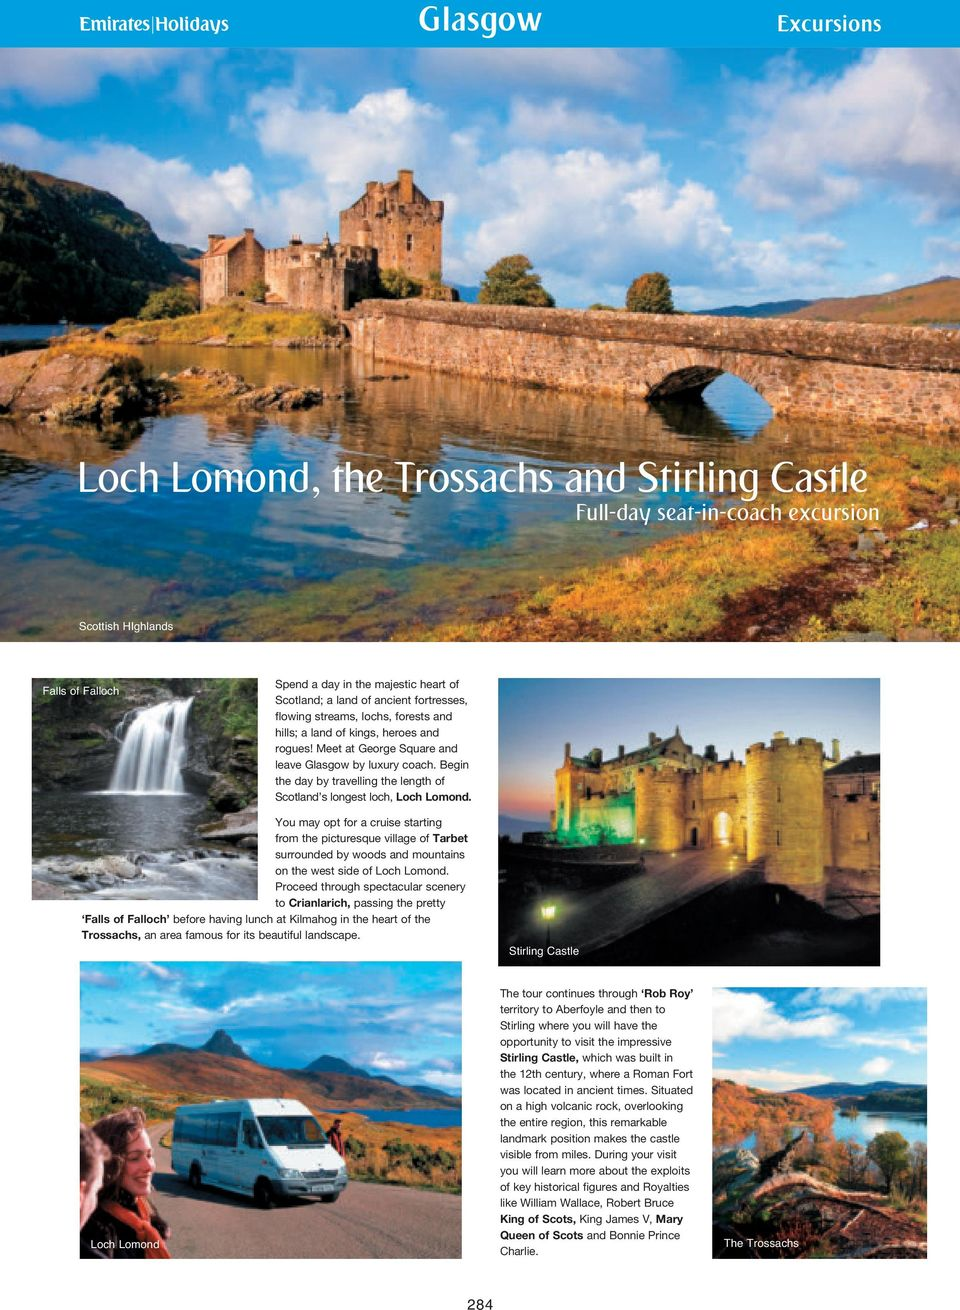 Begin the day by travelling the length of Scotland s longest loch, Loch Lomond.